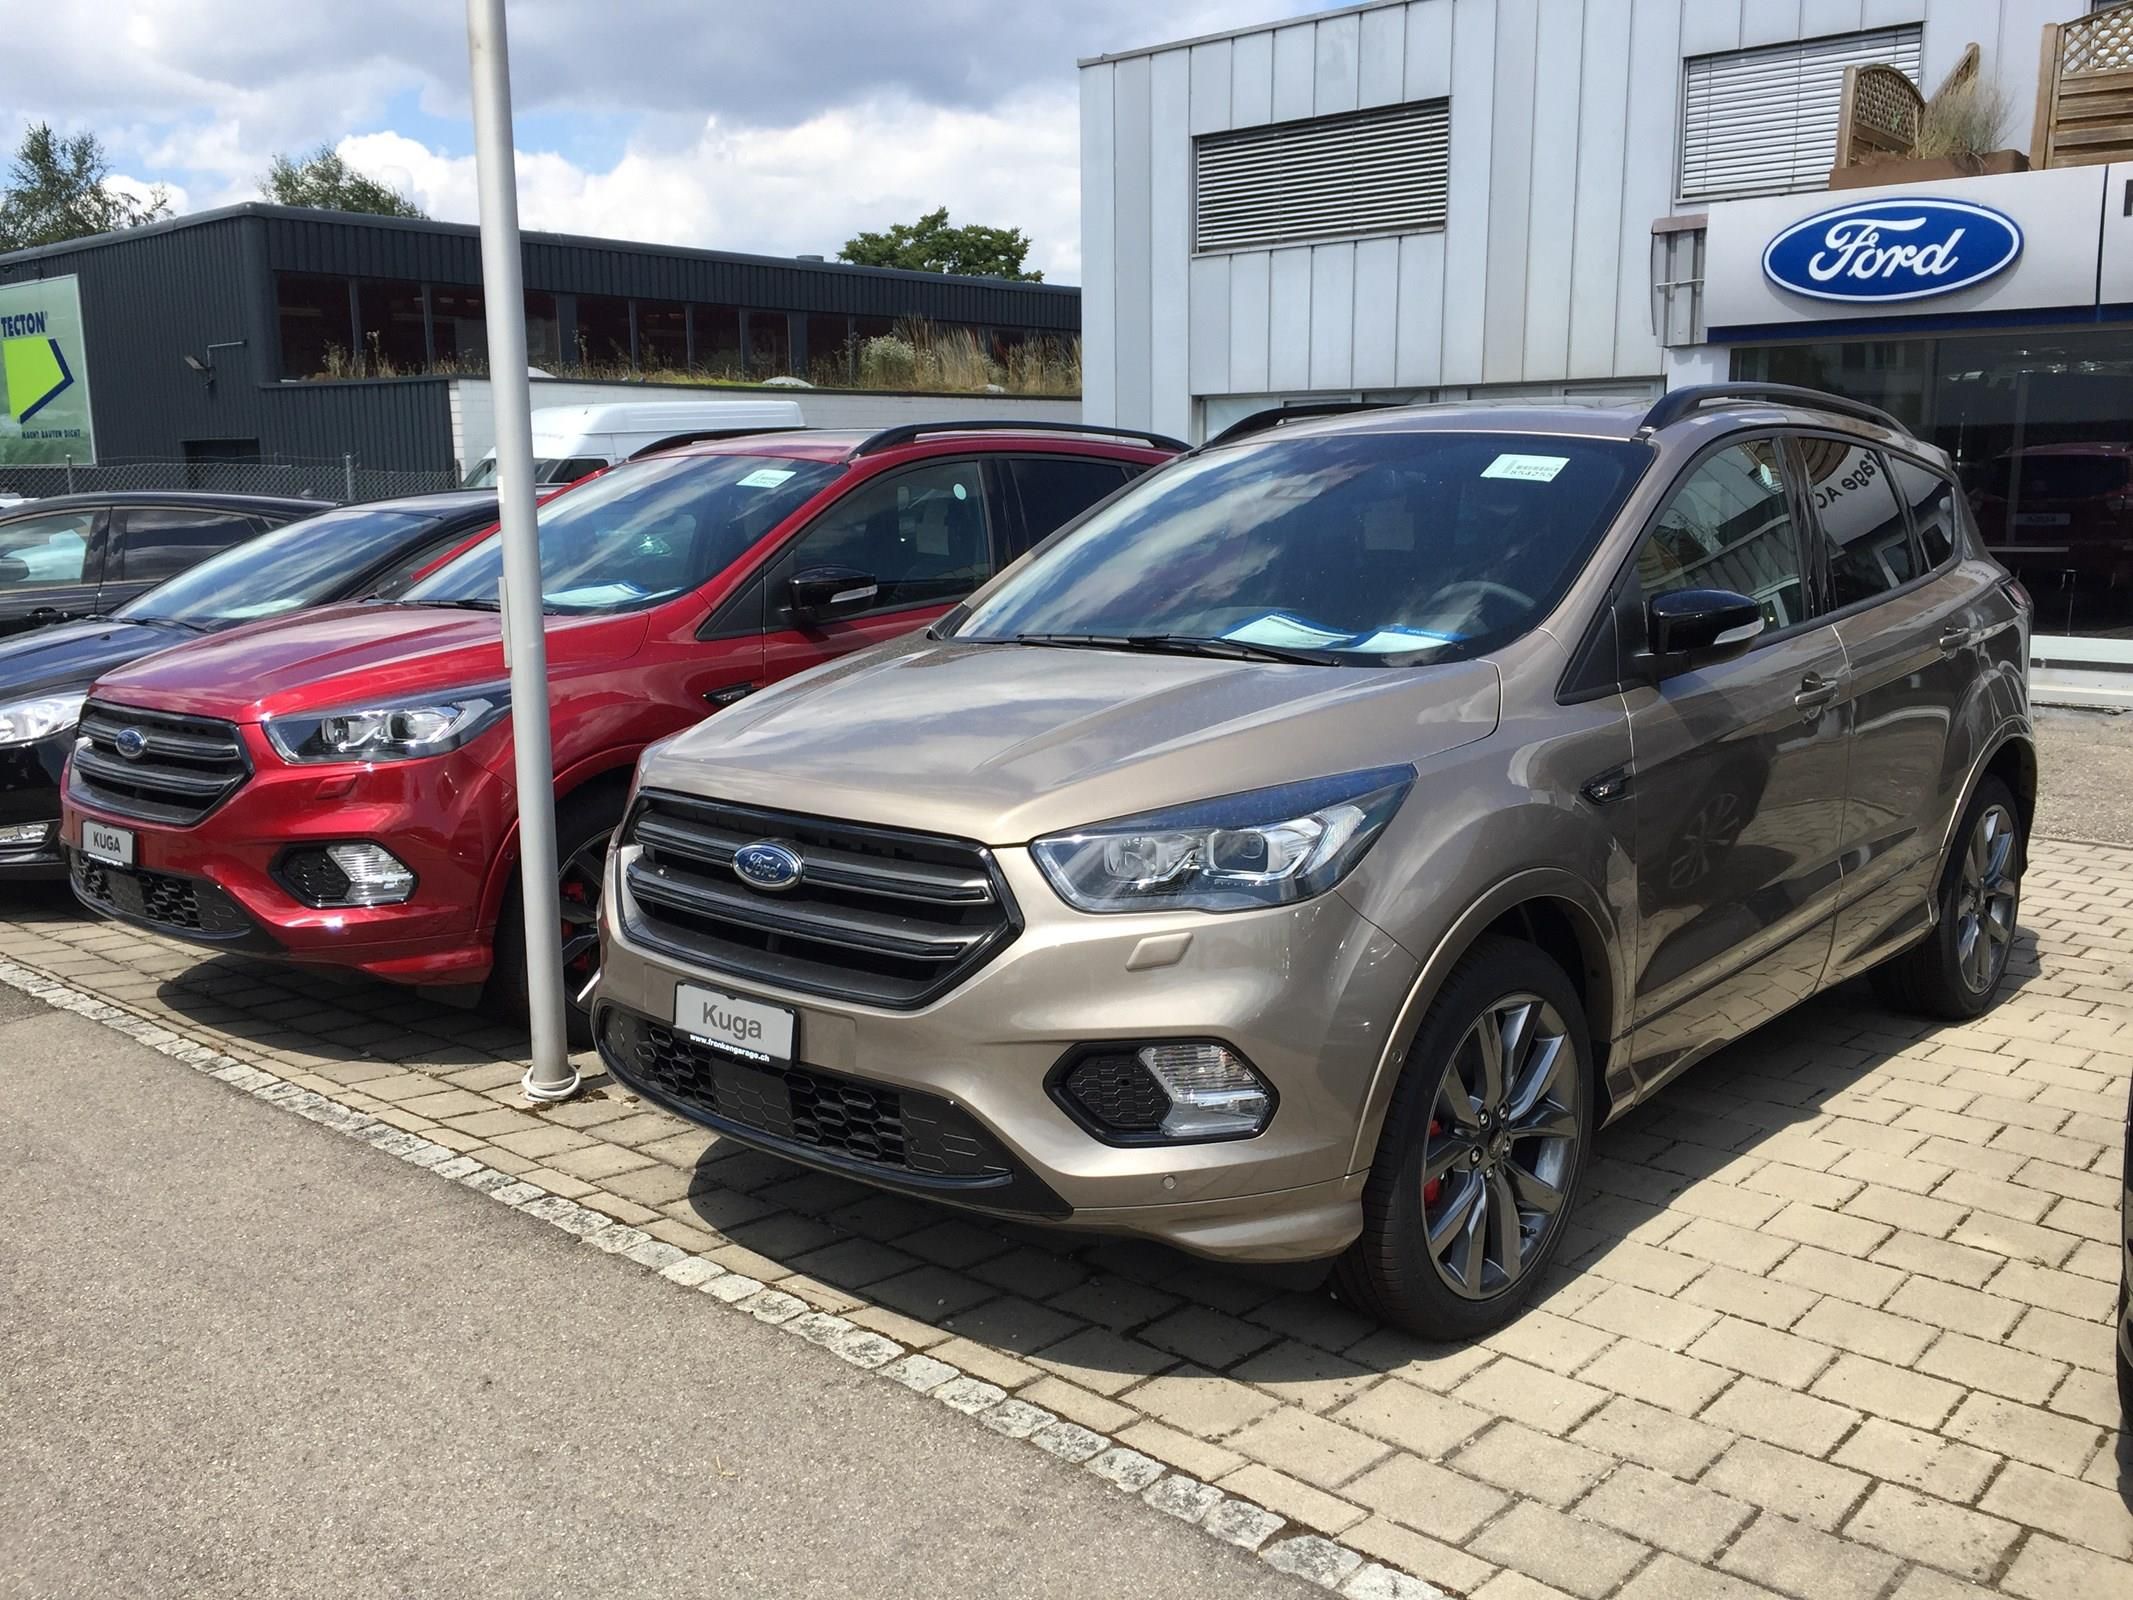 FORD KUGA Kuga 2.0 TDCi ST Line High 4WD PowerShift